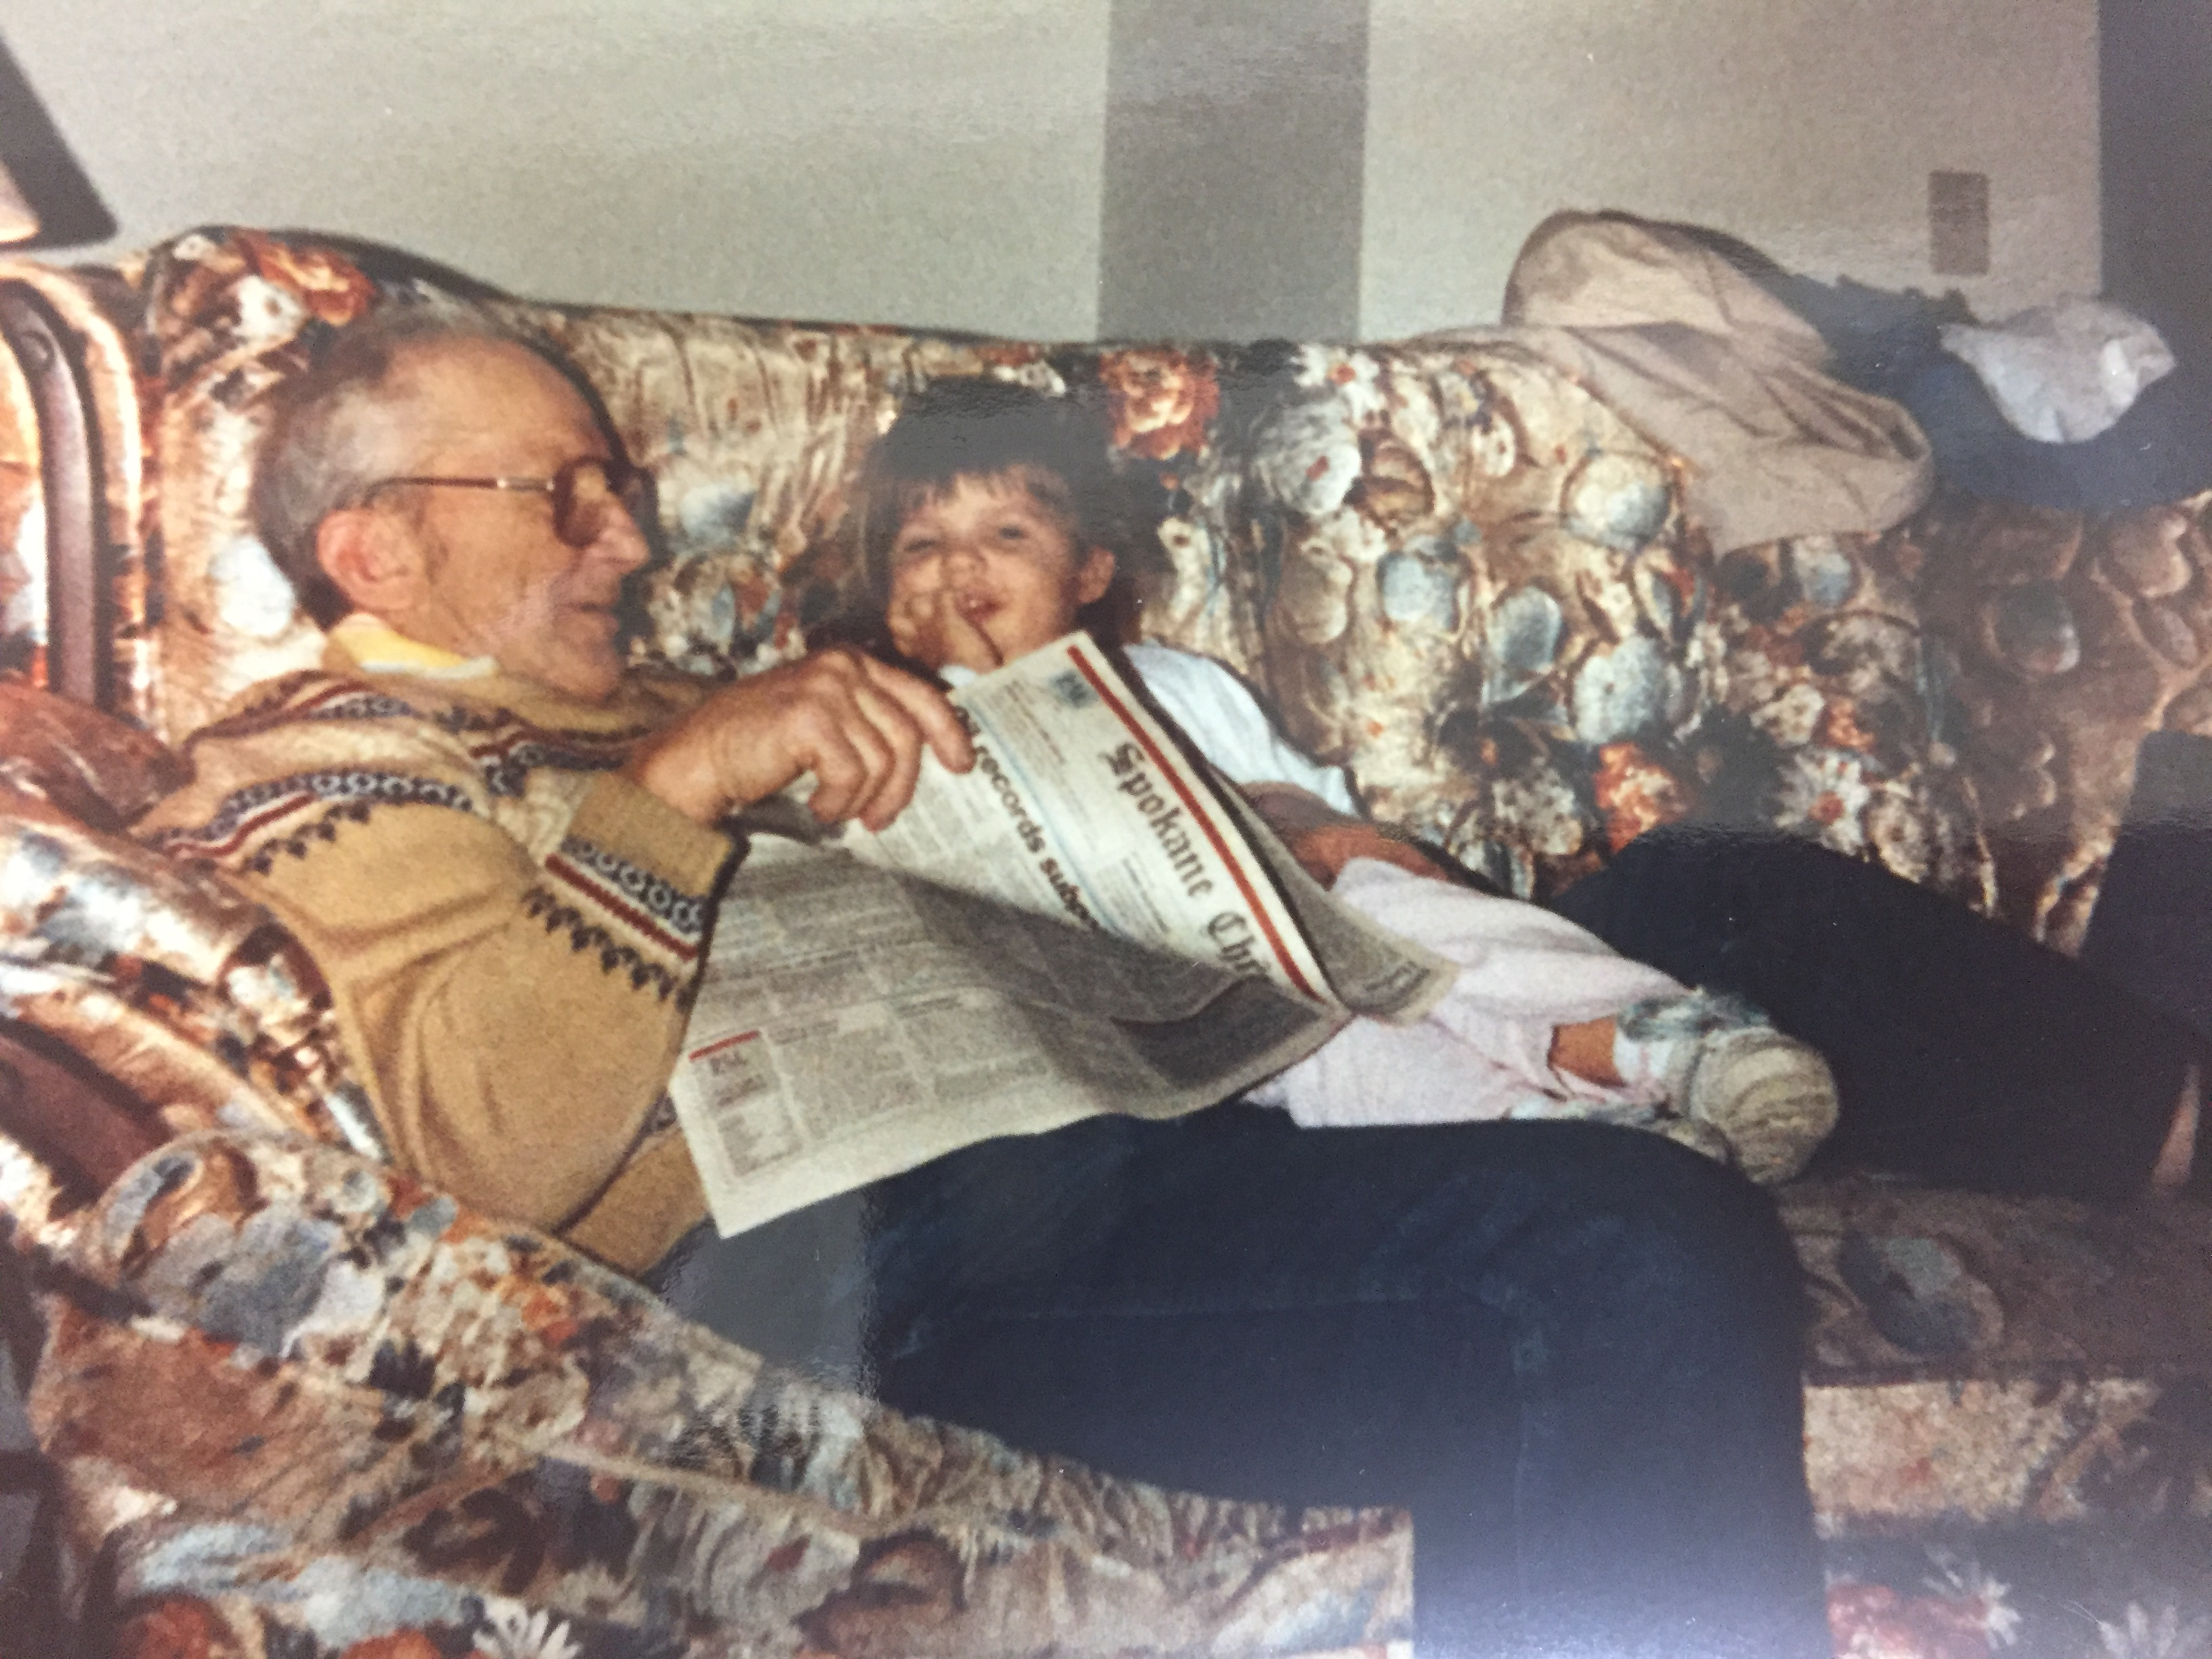 Stanley Zobel with his great-granddaughter (my daughter) Jessica in 1990. Photo by Cathy Hanson